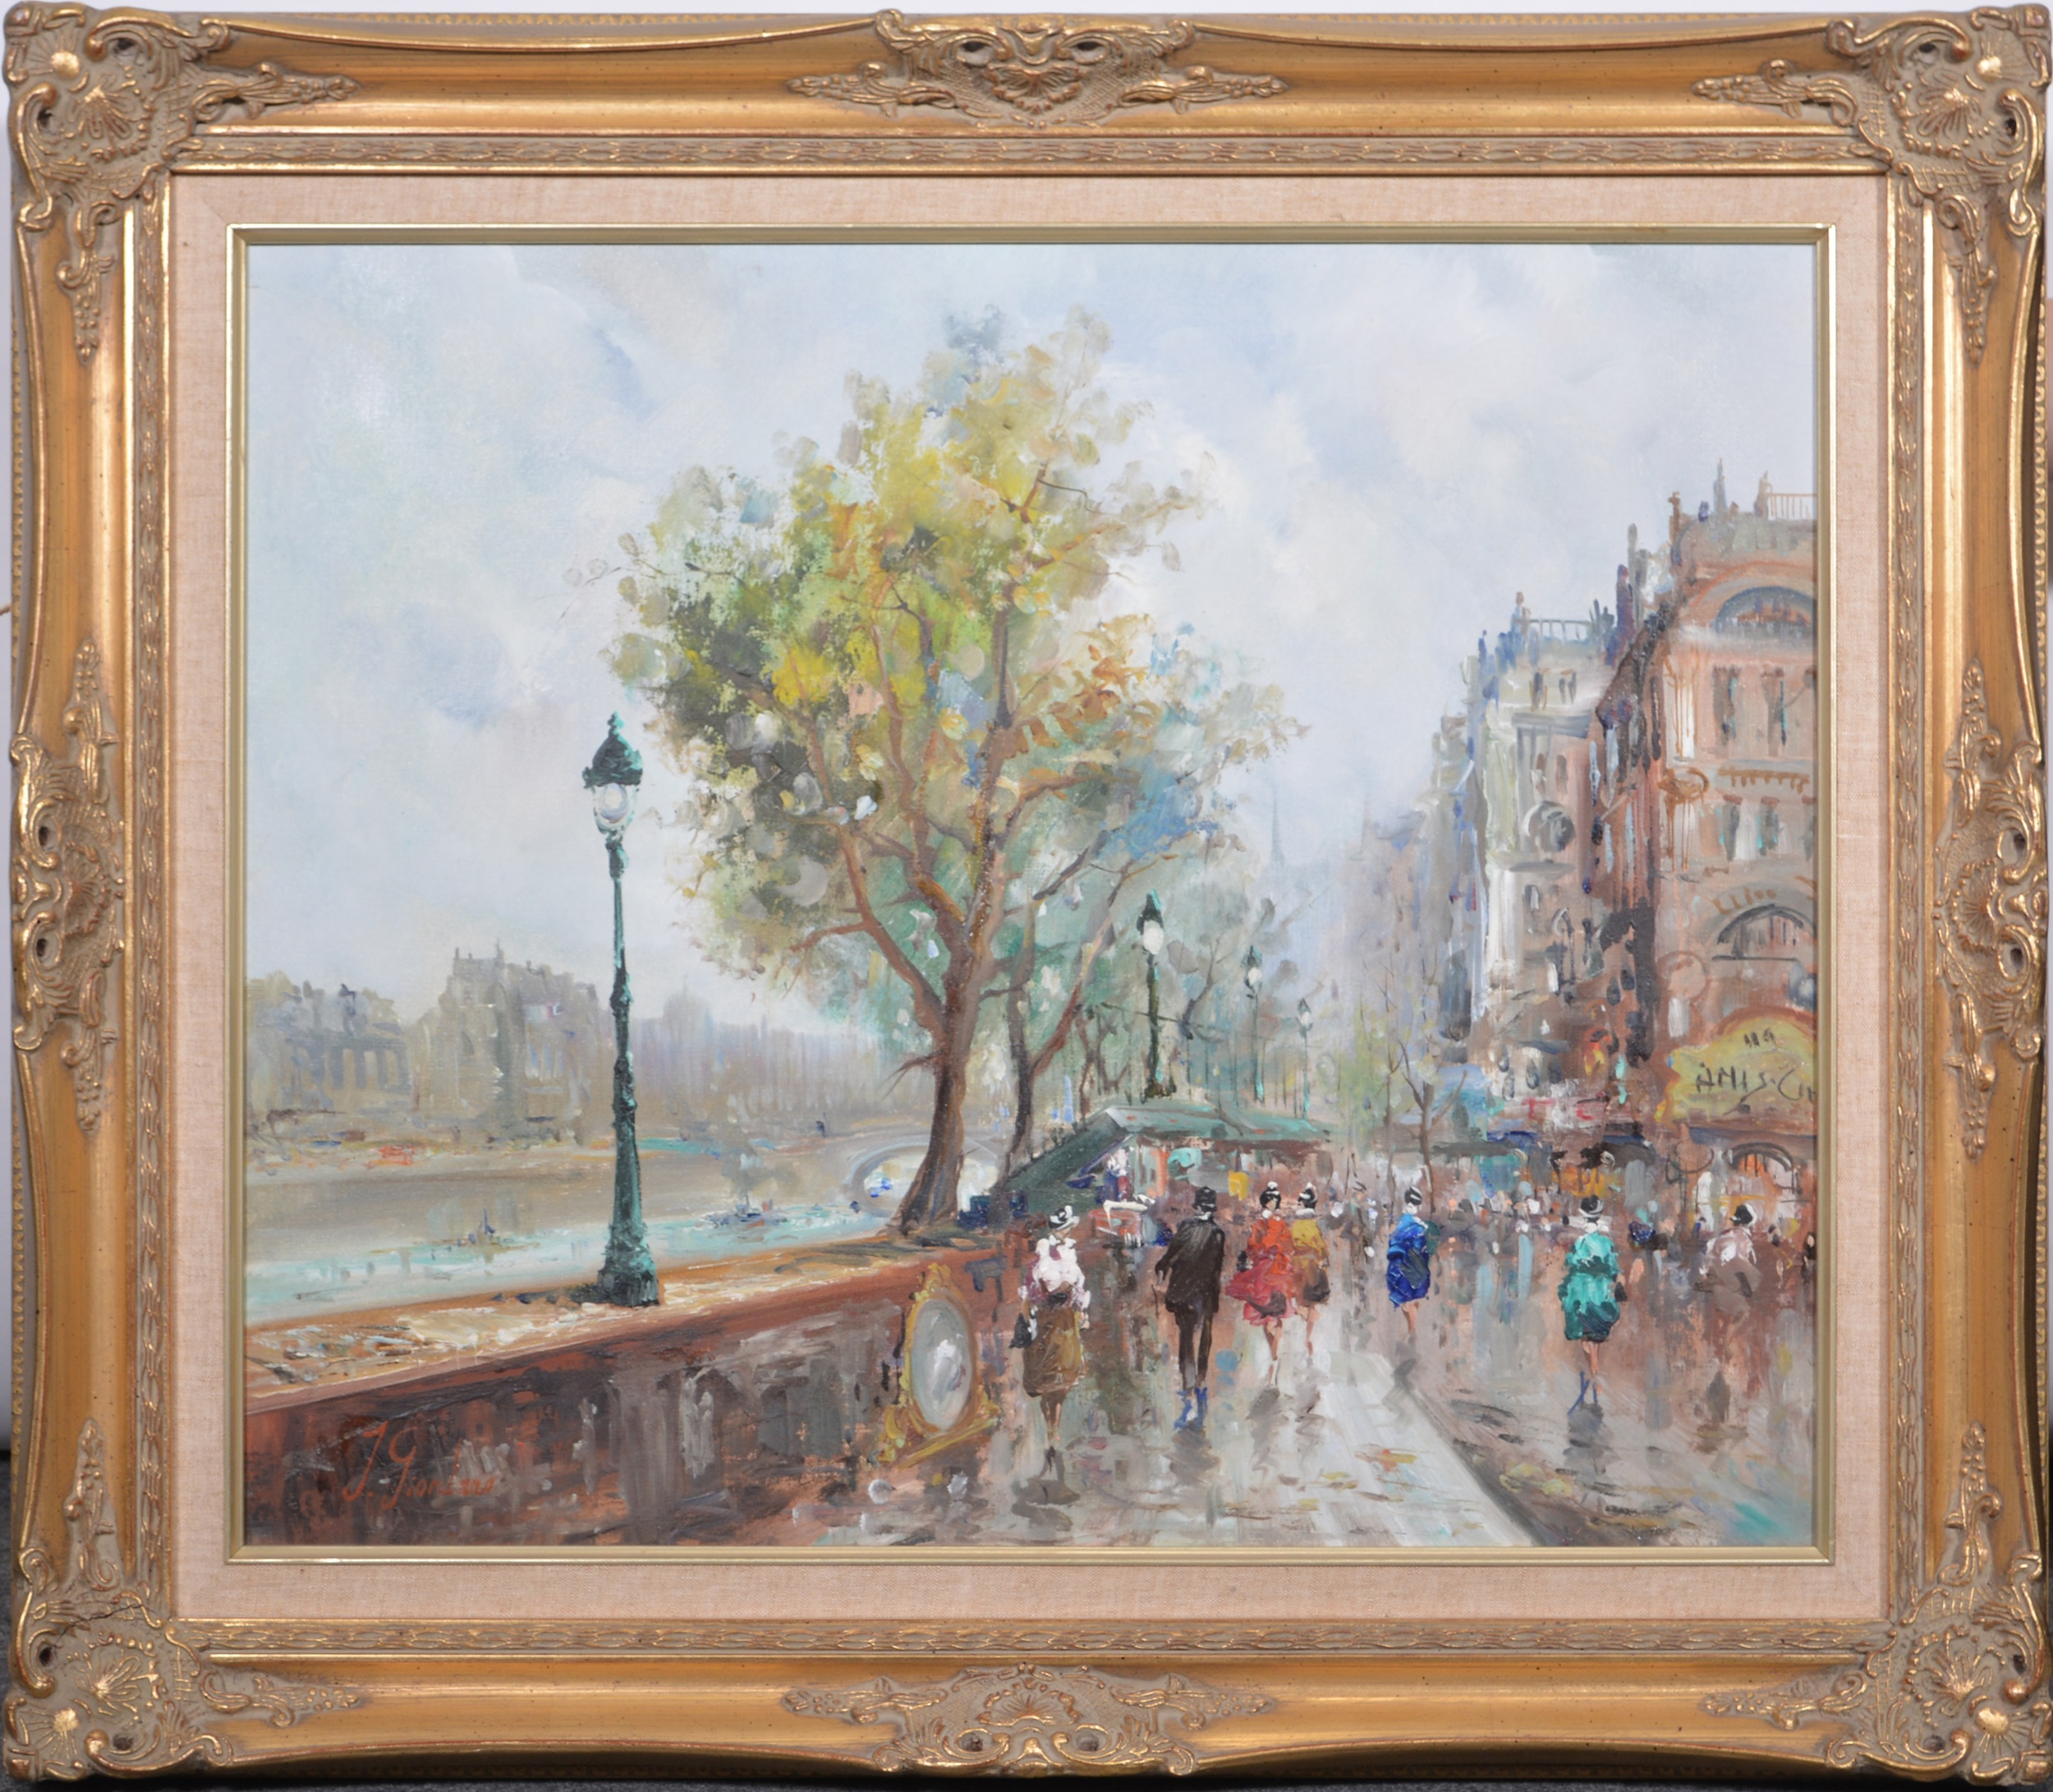 J Giordano, By the River Seine, - Image 2 of 4